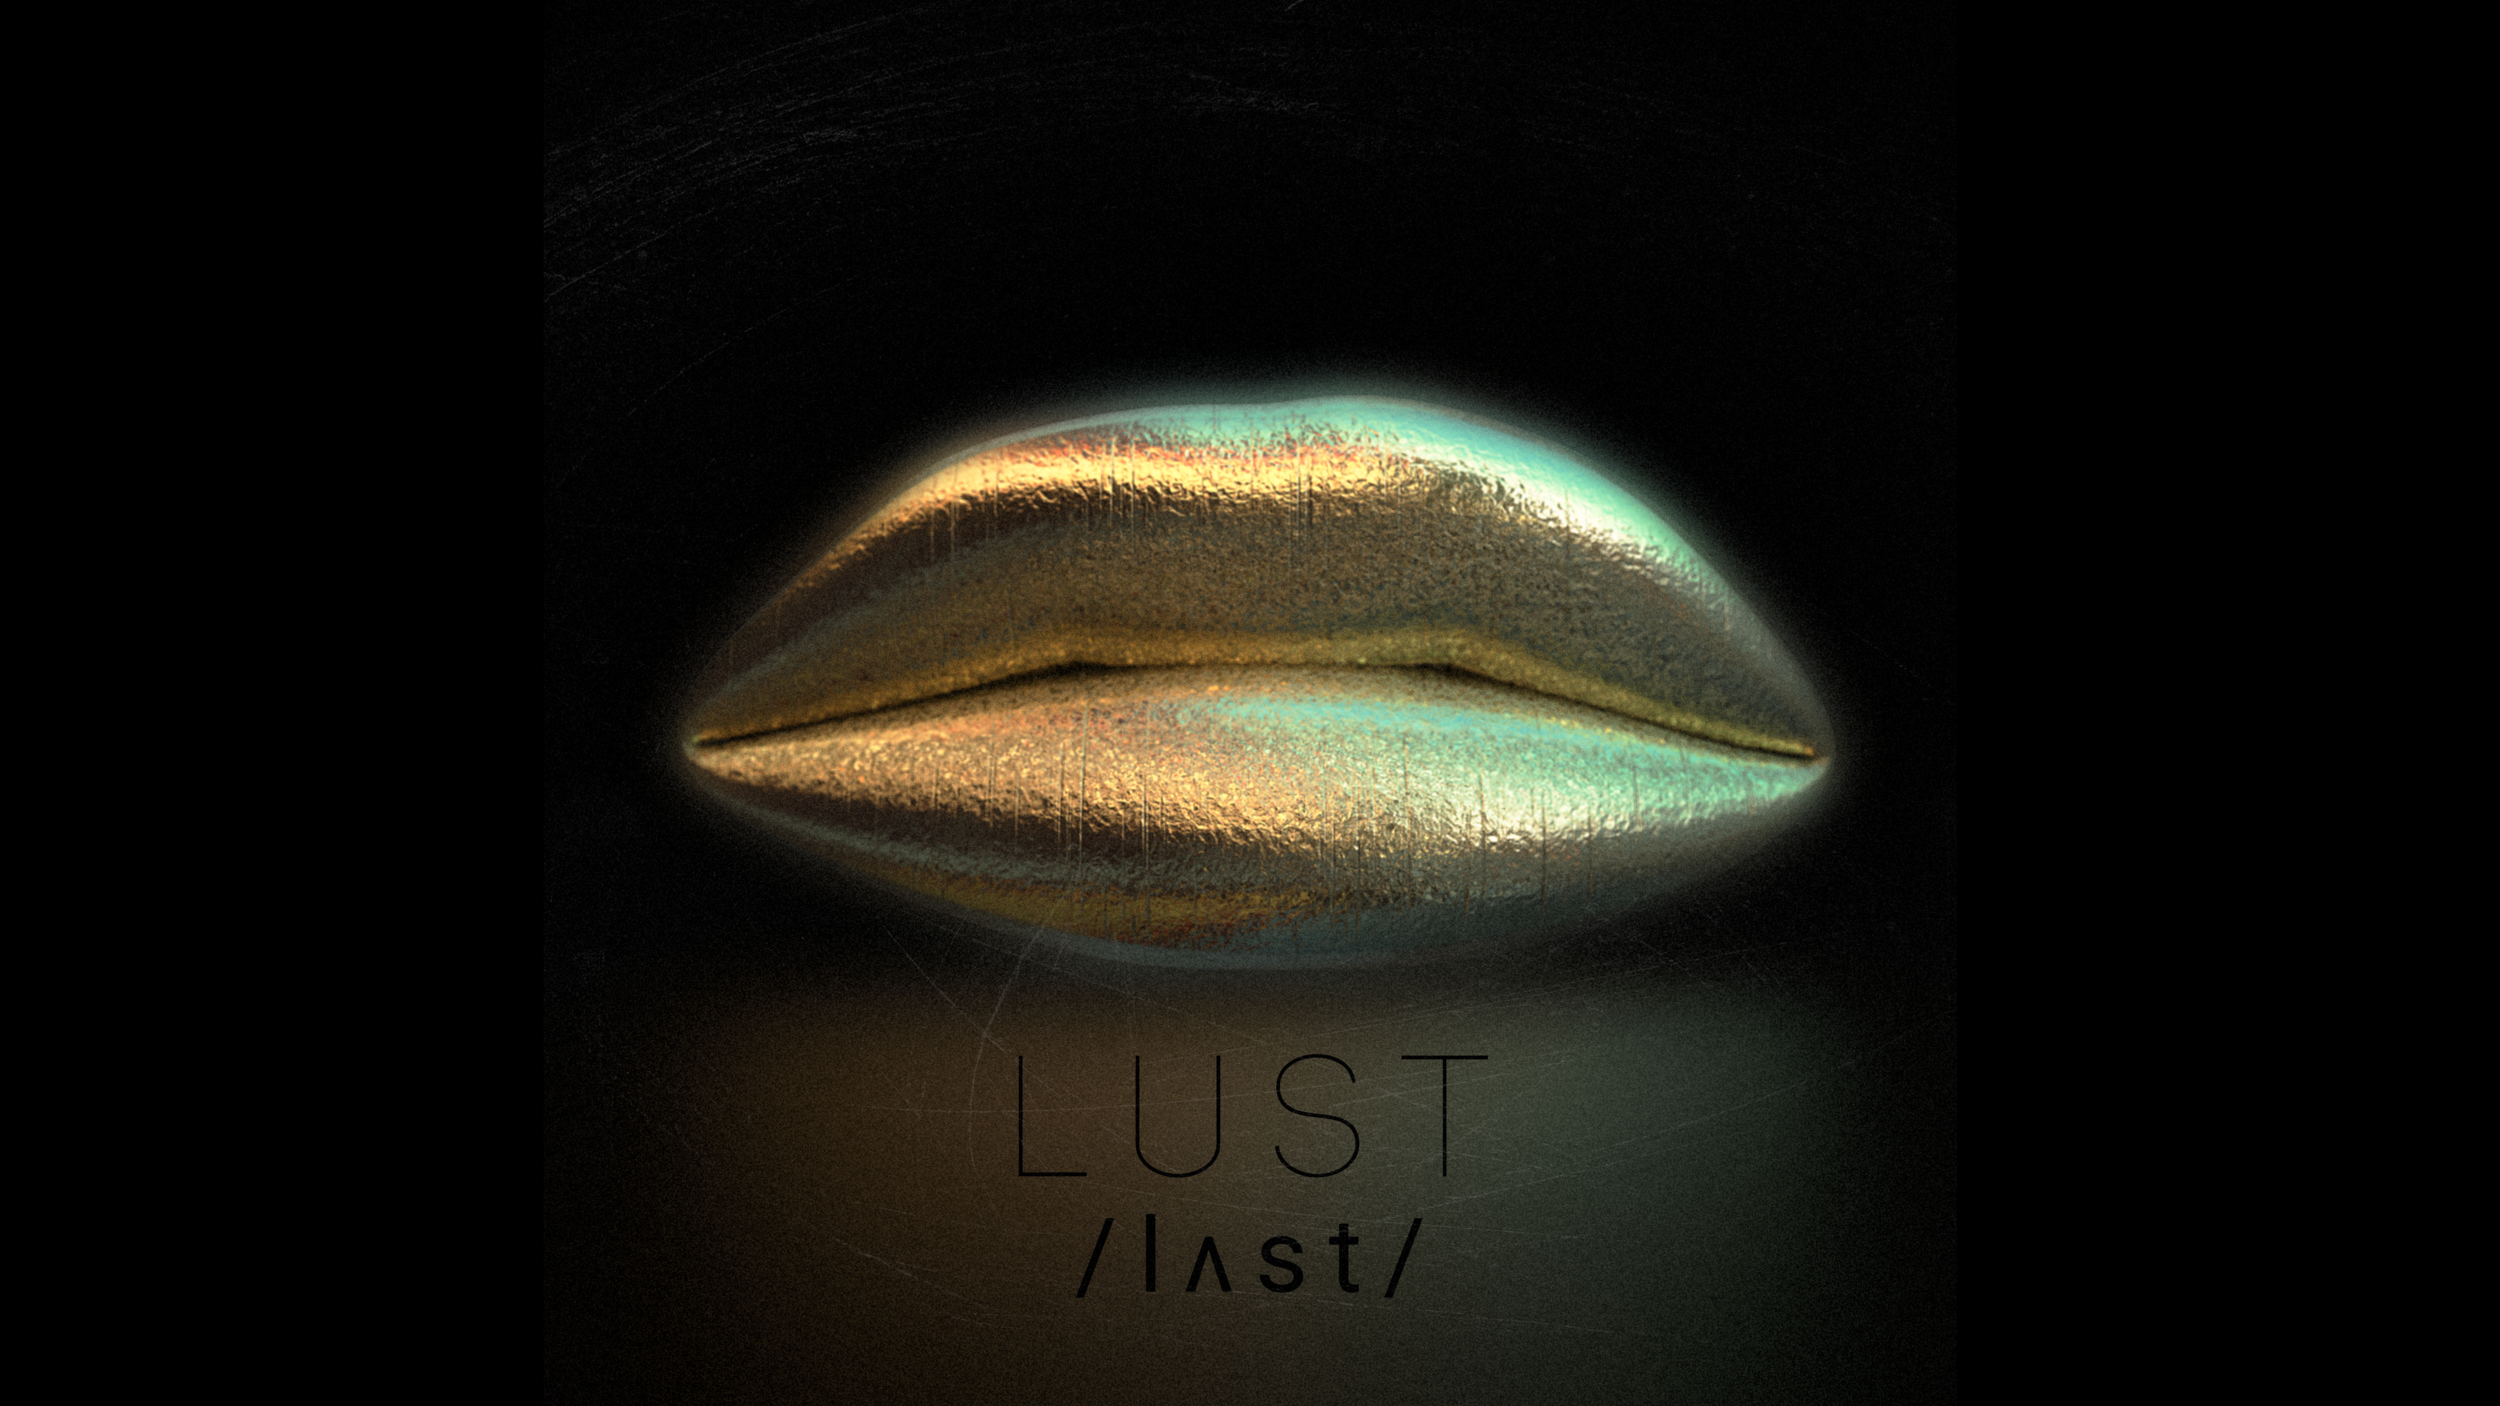 lust_4k_wallpaper.png